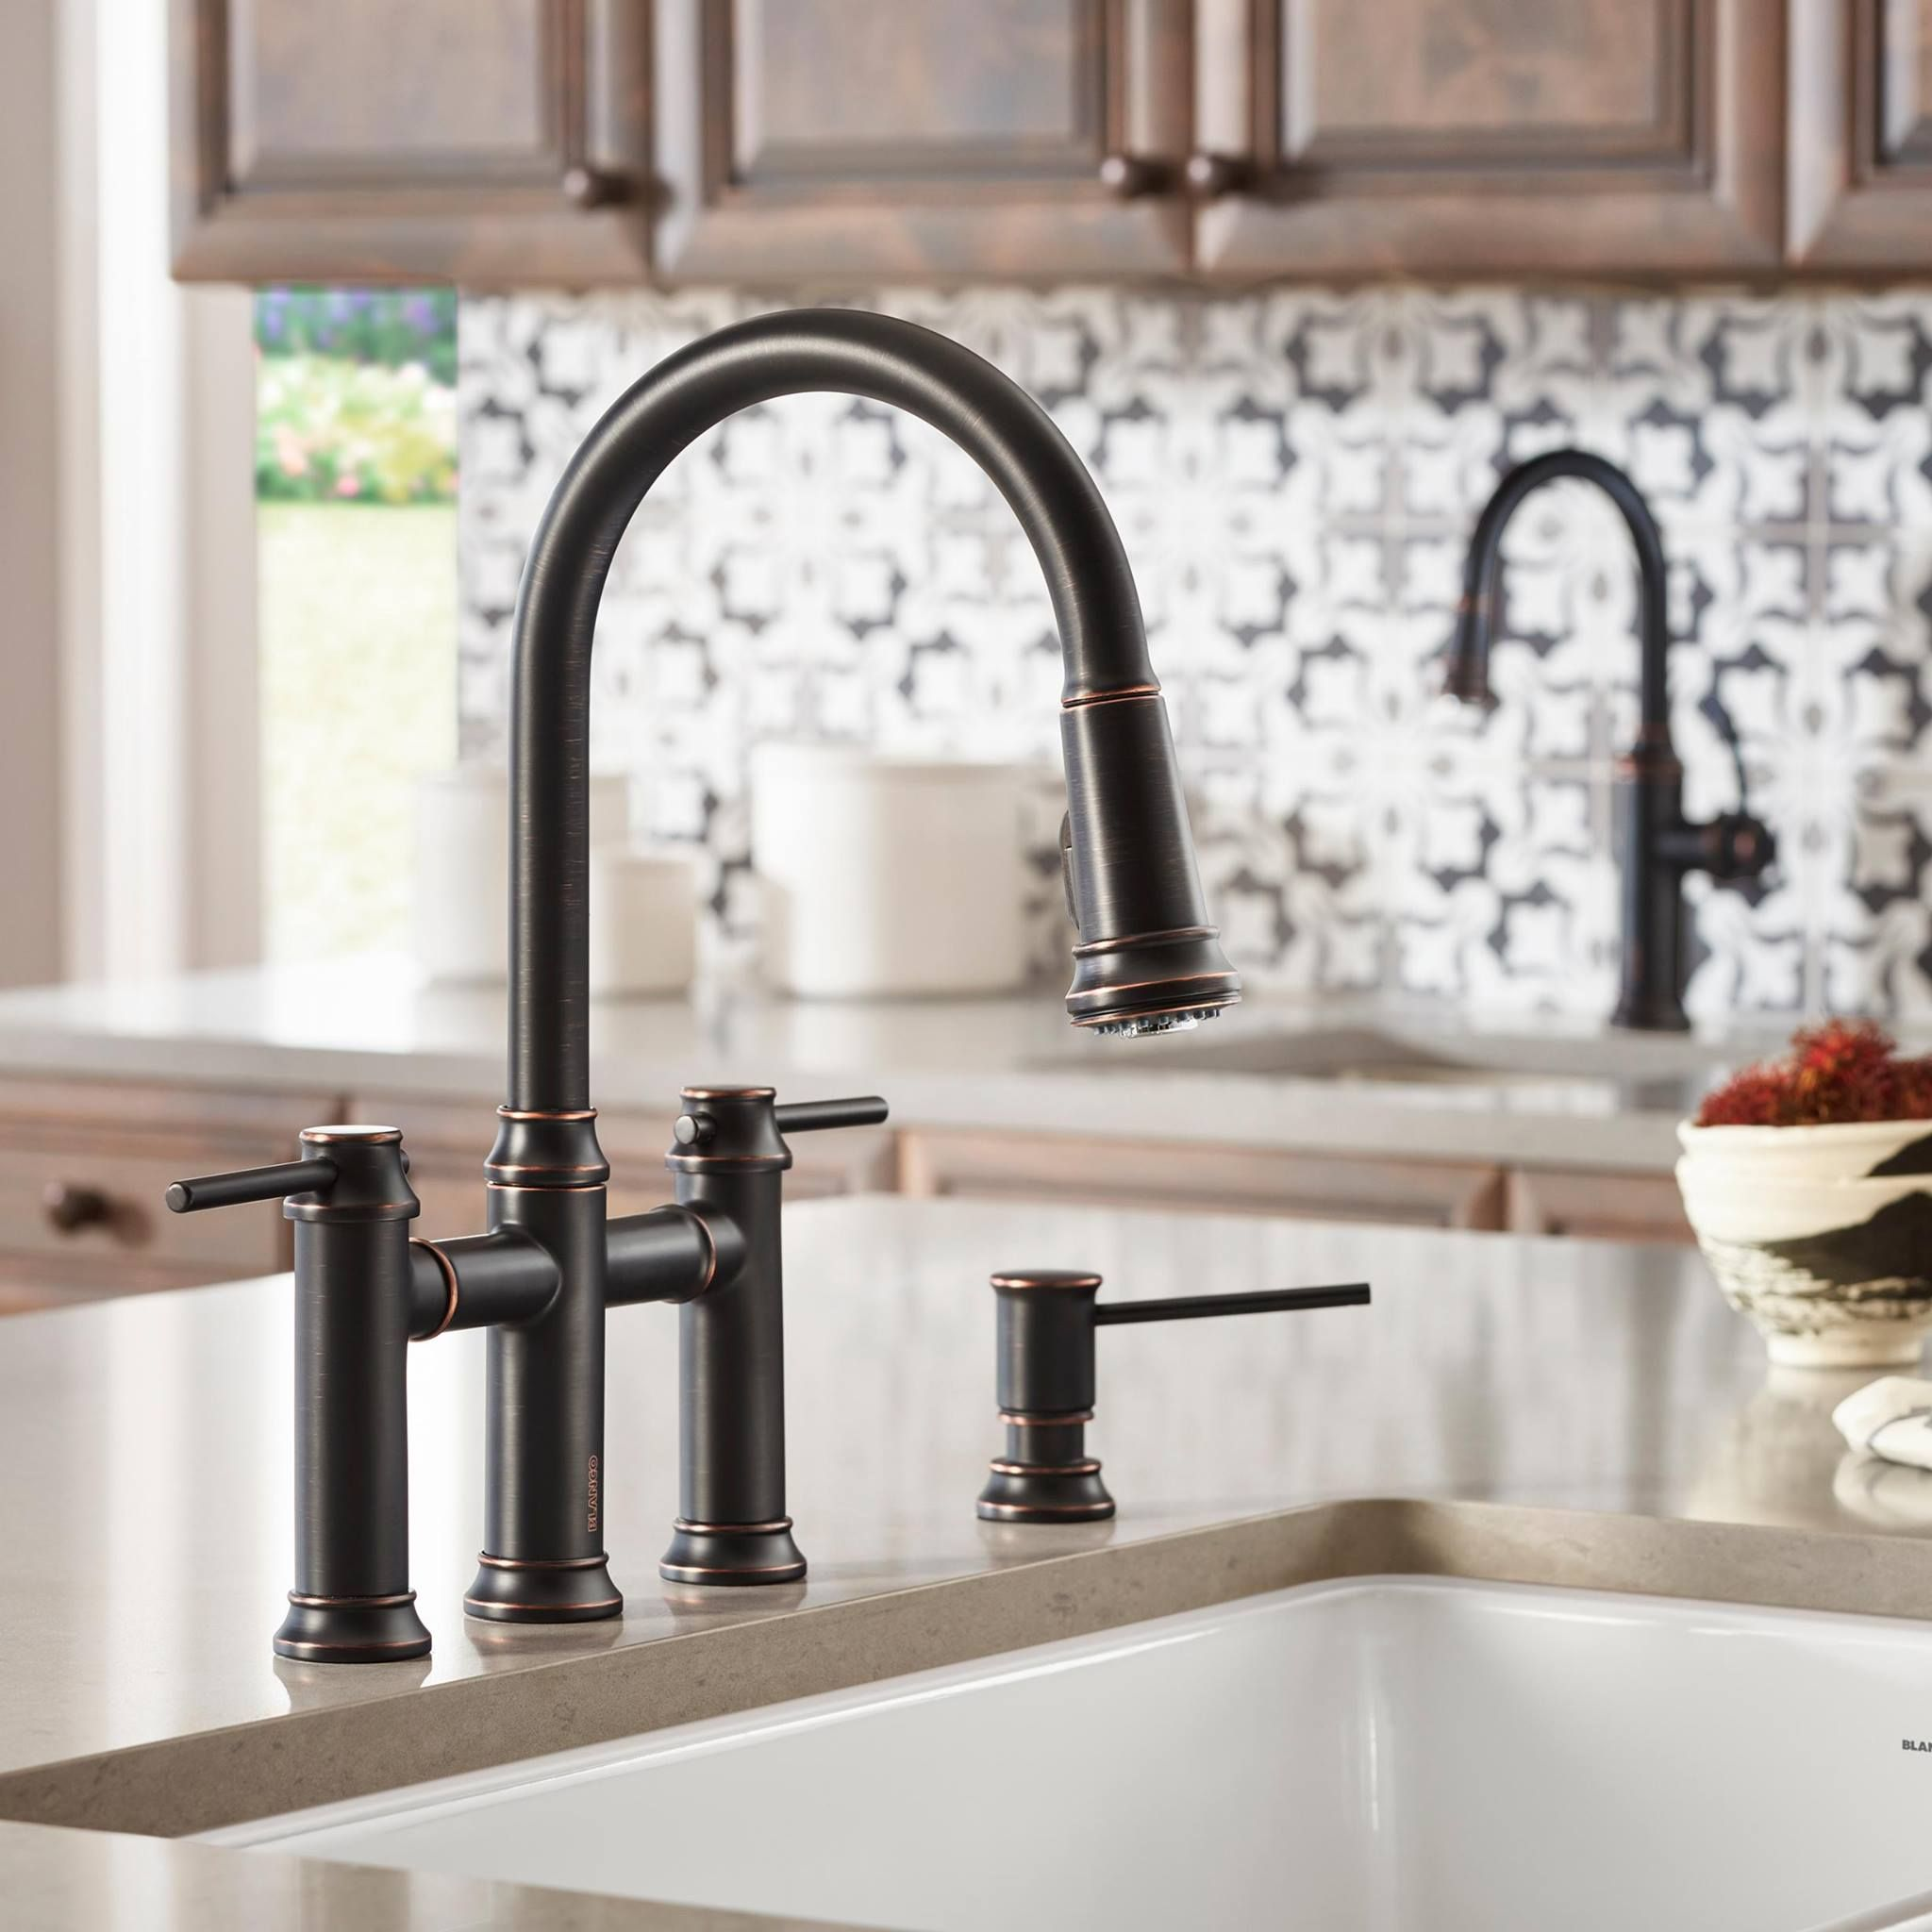 Blanco America Empressa Bridge Faucet In Oil Rubbed Bronze